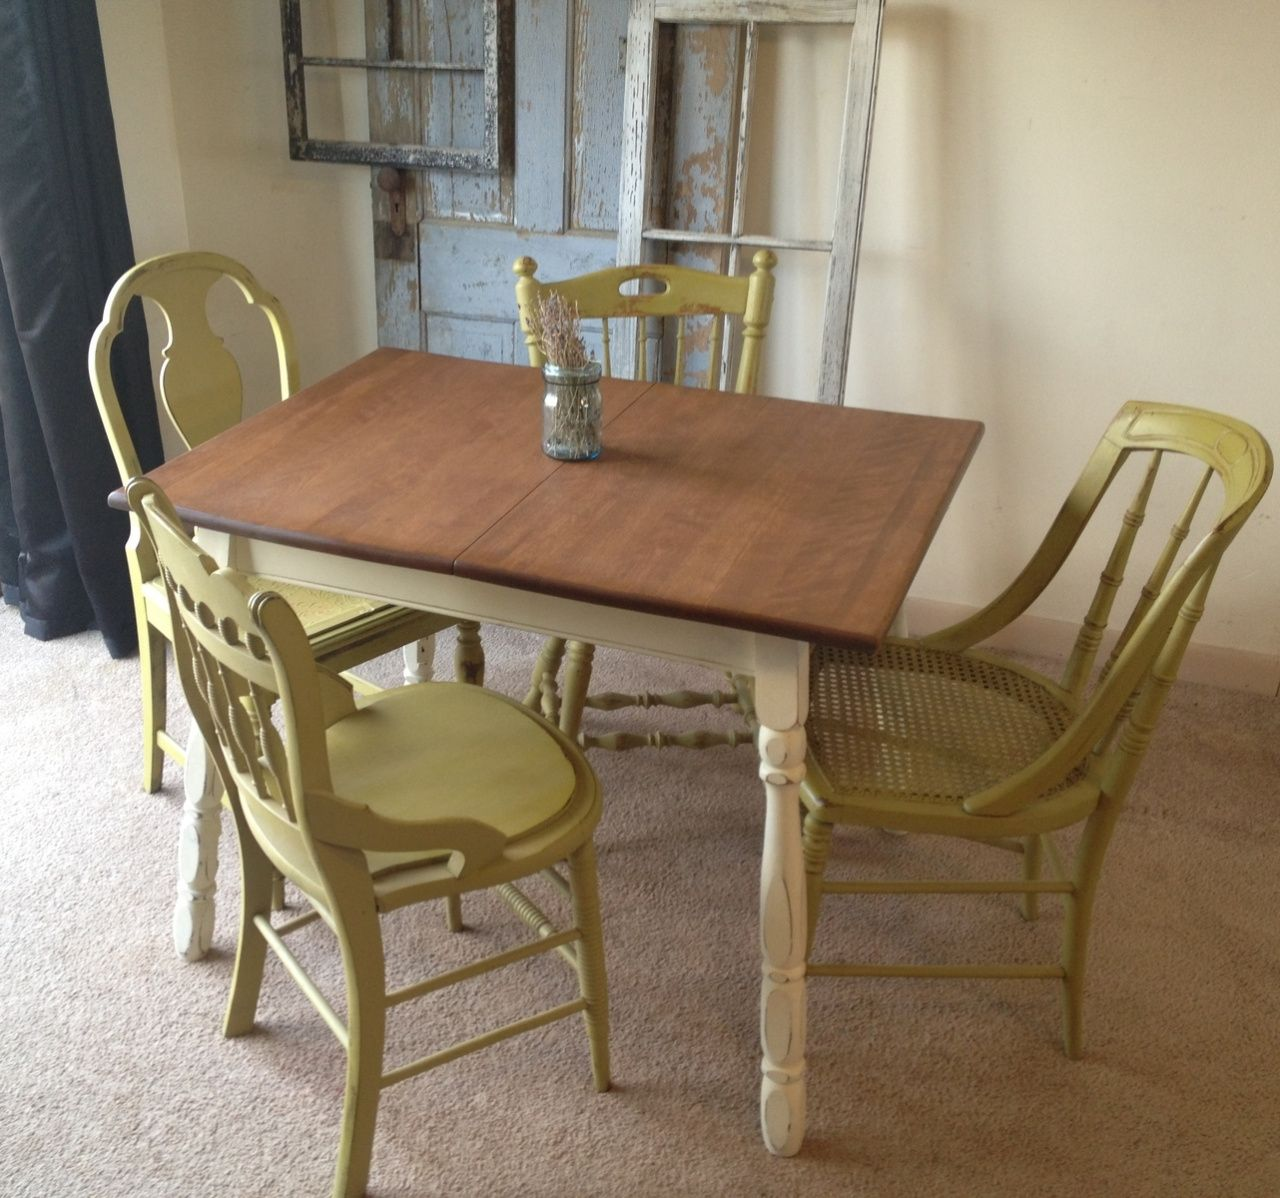 Small Wood Kitchen Table Large Home Office Furniture Check More At Http Www Nikkitsfun Com Small Table And Chairs Retro Kitchen Tables Vintage Dining Table